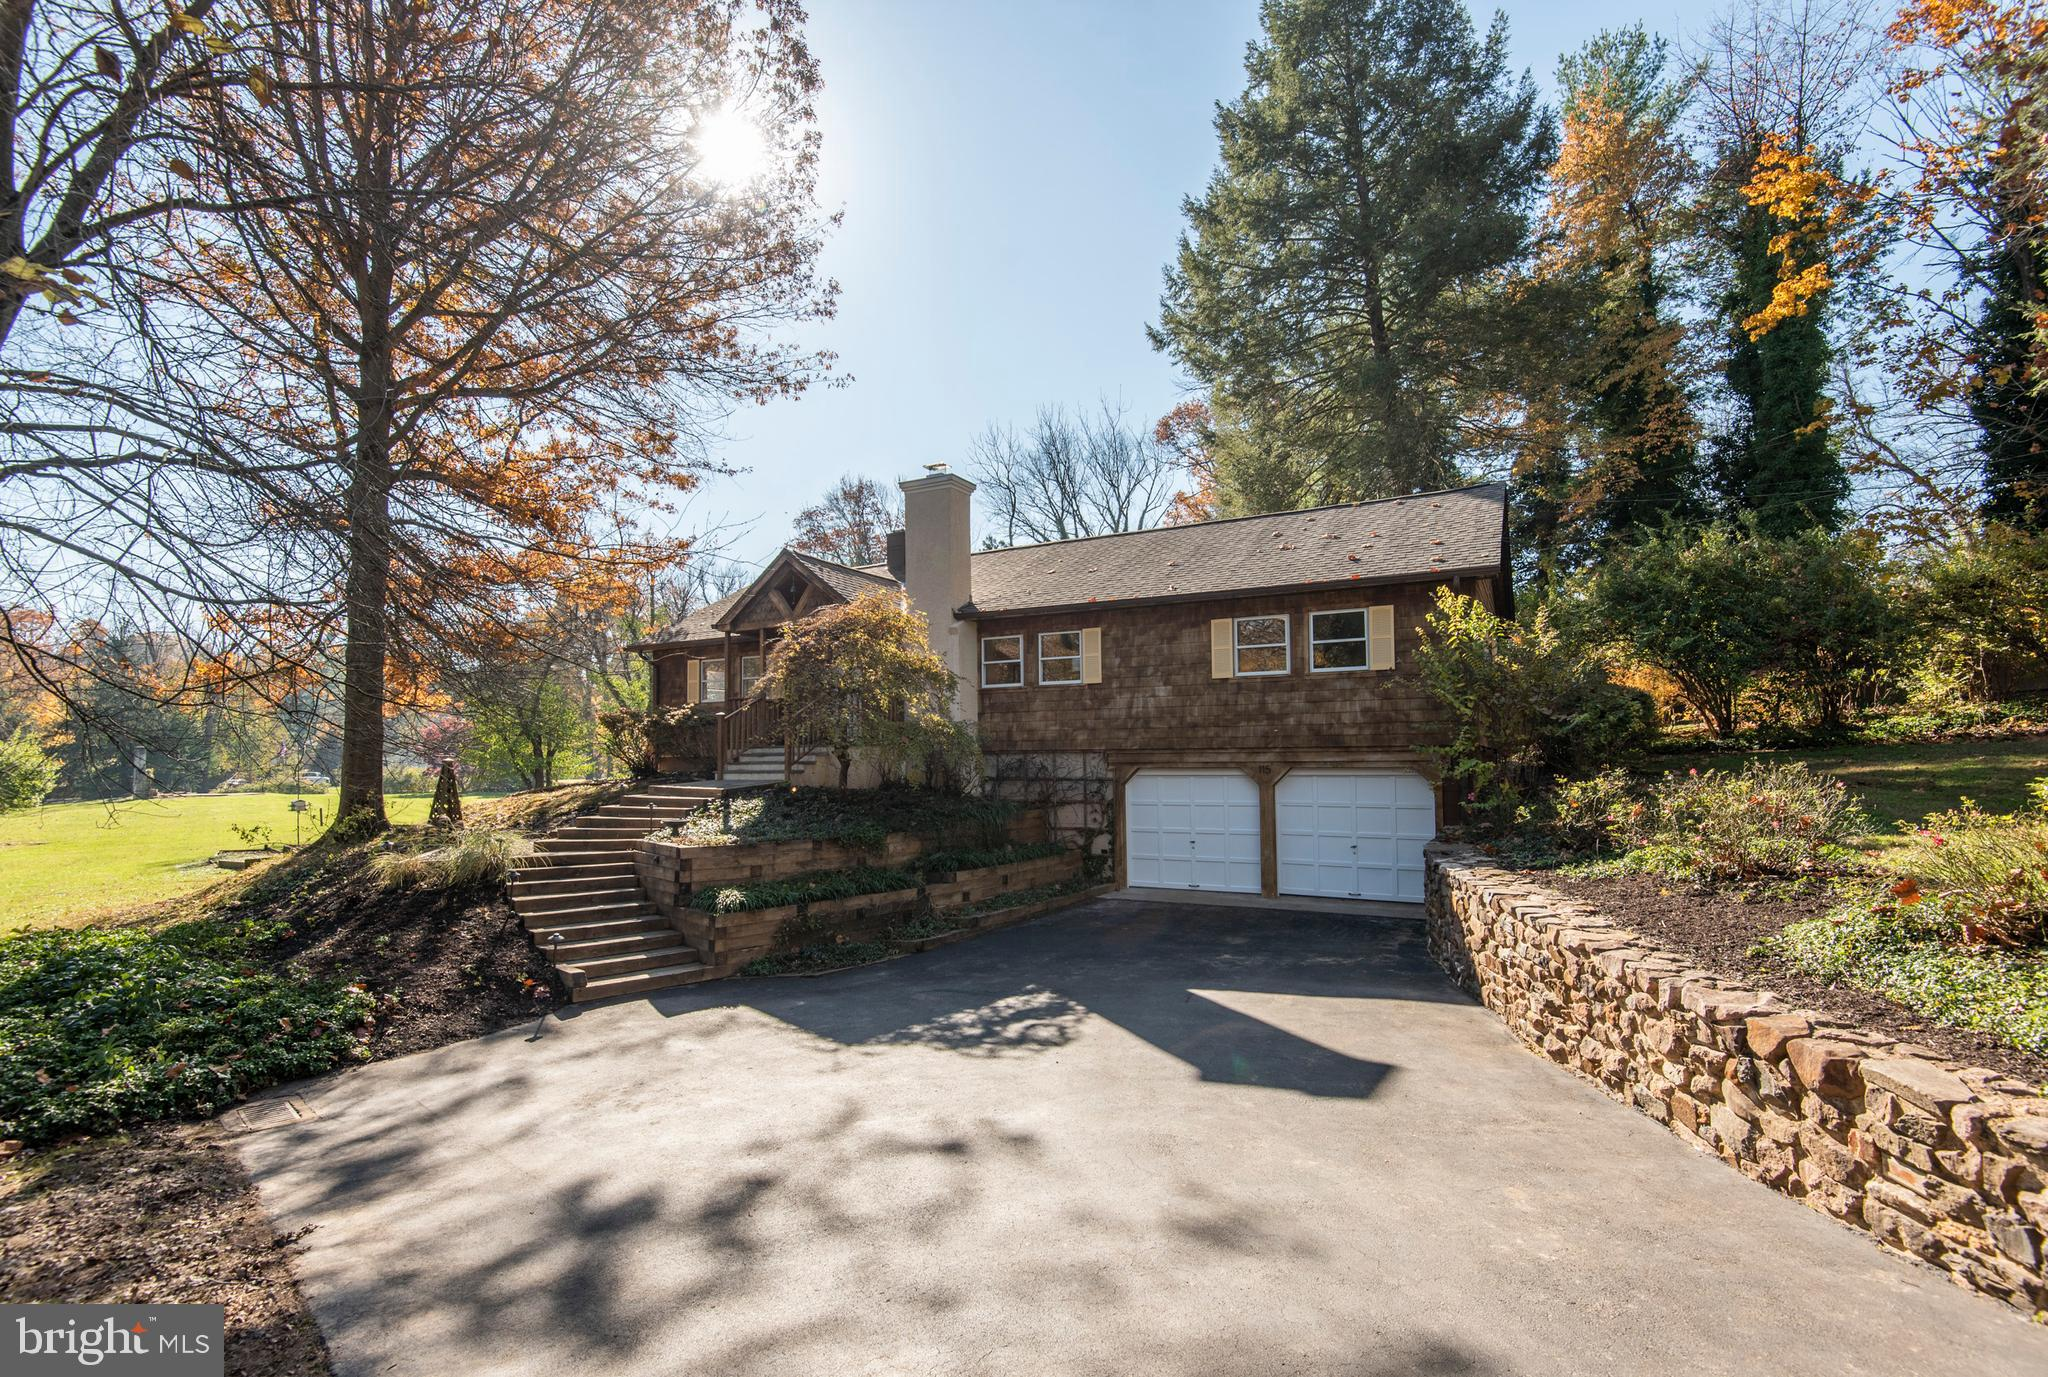 Looking for a property that will provide many years of in-home enjoyment? This ranch style, heart throb of a home will provide just that! Imagine cold Winter nights soaking in the hot tub on the multi-level deck while star gazing and sipping wine. Or preparing meals in a newly remodeled kitchen! This home is located on a beautiful lot just moments from King of Prussia, Downtown Wayne and convenient to Center City Philadelphia. You will love the charming wood facade and covered front entryway that leads into the foyer. The living room with wood floors and crown molding is warmed by a gorgeous brick fireplace. The dining room provides an intimate environment with chair rail, crown molding and modern light fixture that adds ambiance while entertaining. The stunning and spacious kitchen has an abundance of white wood cabinetry and tons of counter space to prepare wonderful home-cooked meals. It also offers granite counter tops, tile back splash, white wood flooring, stainless steel appliances, 5-burner dual fuel stove with oven warming drawer, double bowl stainless steel sink, greenhouse window over the stove, and French doors that lead to the deck. The kitchen is open to the family room (formerly the third bedroom) with an abundance of natural light illuminating both these spaces. You will love the main bedroom with crown molding and four closets (one closet has double hung rods and another features a wooden closet organizer). The guest bedroom has a closet and could also be used as a quiet first floor office or study. Both bedrooms provide convenient access to the  graciously appointed full bath. Wooden stairs lead to the lower level with a brand-new powder room with tile floor. You will also find access to the laundry room and the 2-car garage. It provides another room that could be finished into a home office, GYM, recreation area, etc. The possibilities are endless! The exterior gives both privacy and comfort, with views of a babbling creek and gardens from the lar